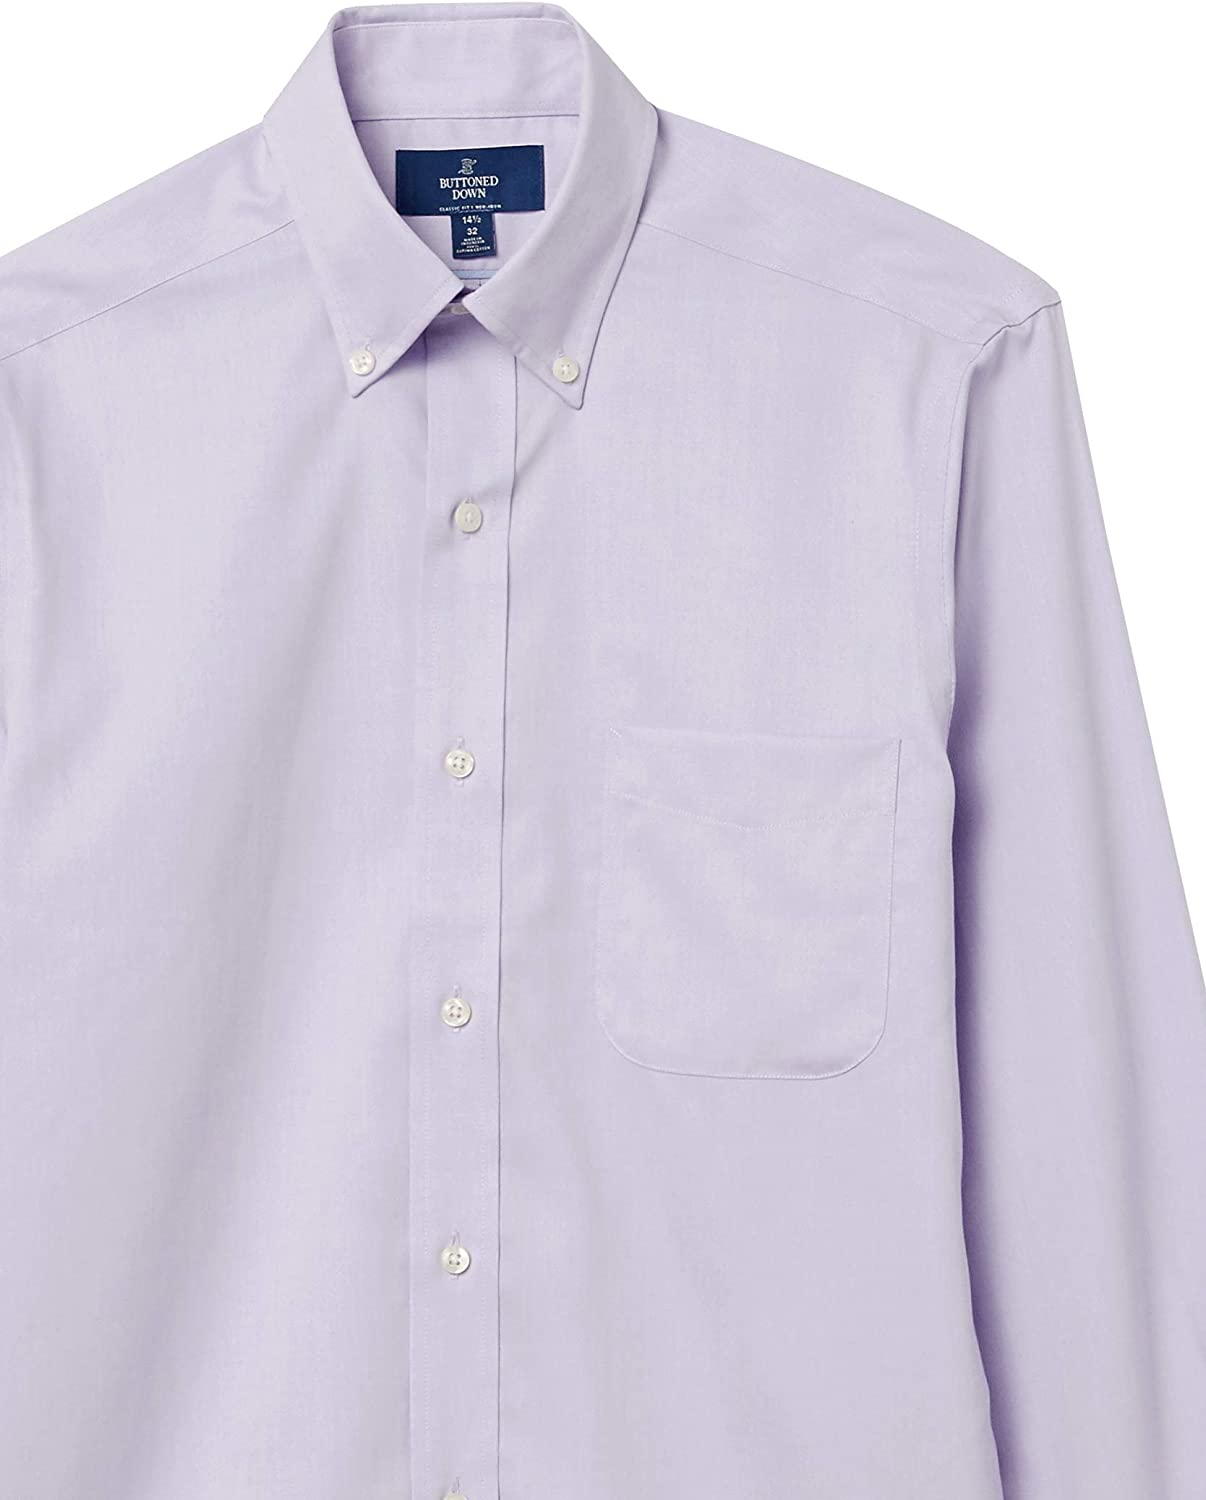 Marca Amazon - Buttoned Down Classic Fit Button Collar Solid Pocket Options Hombre